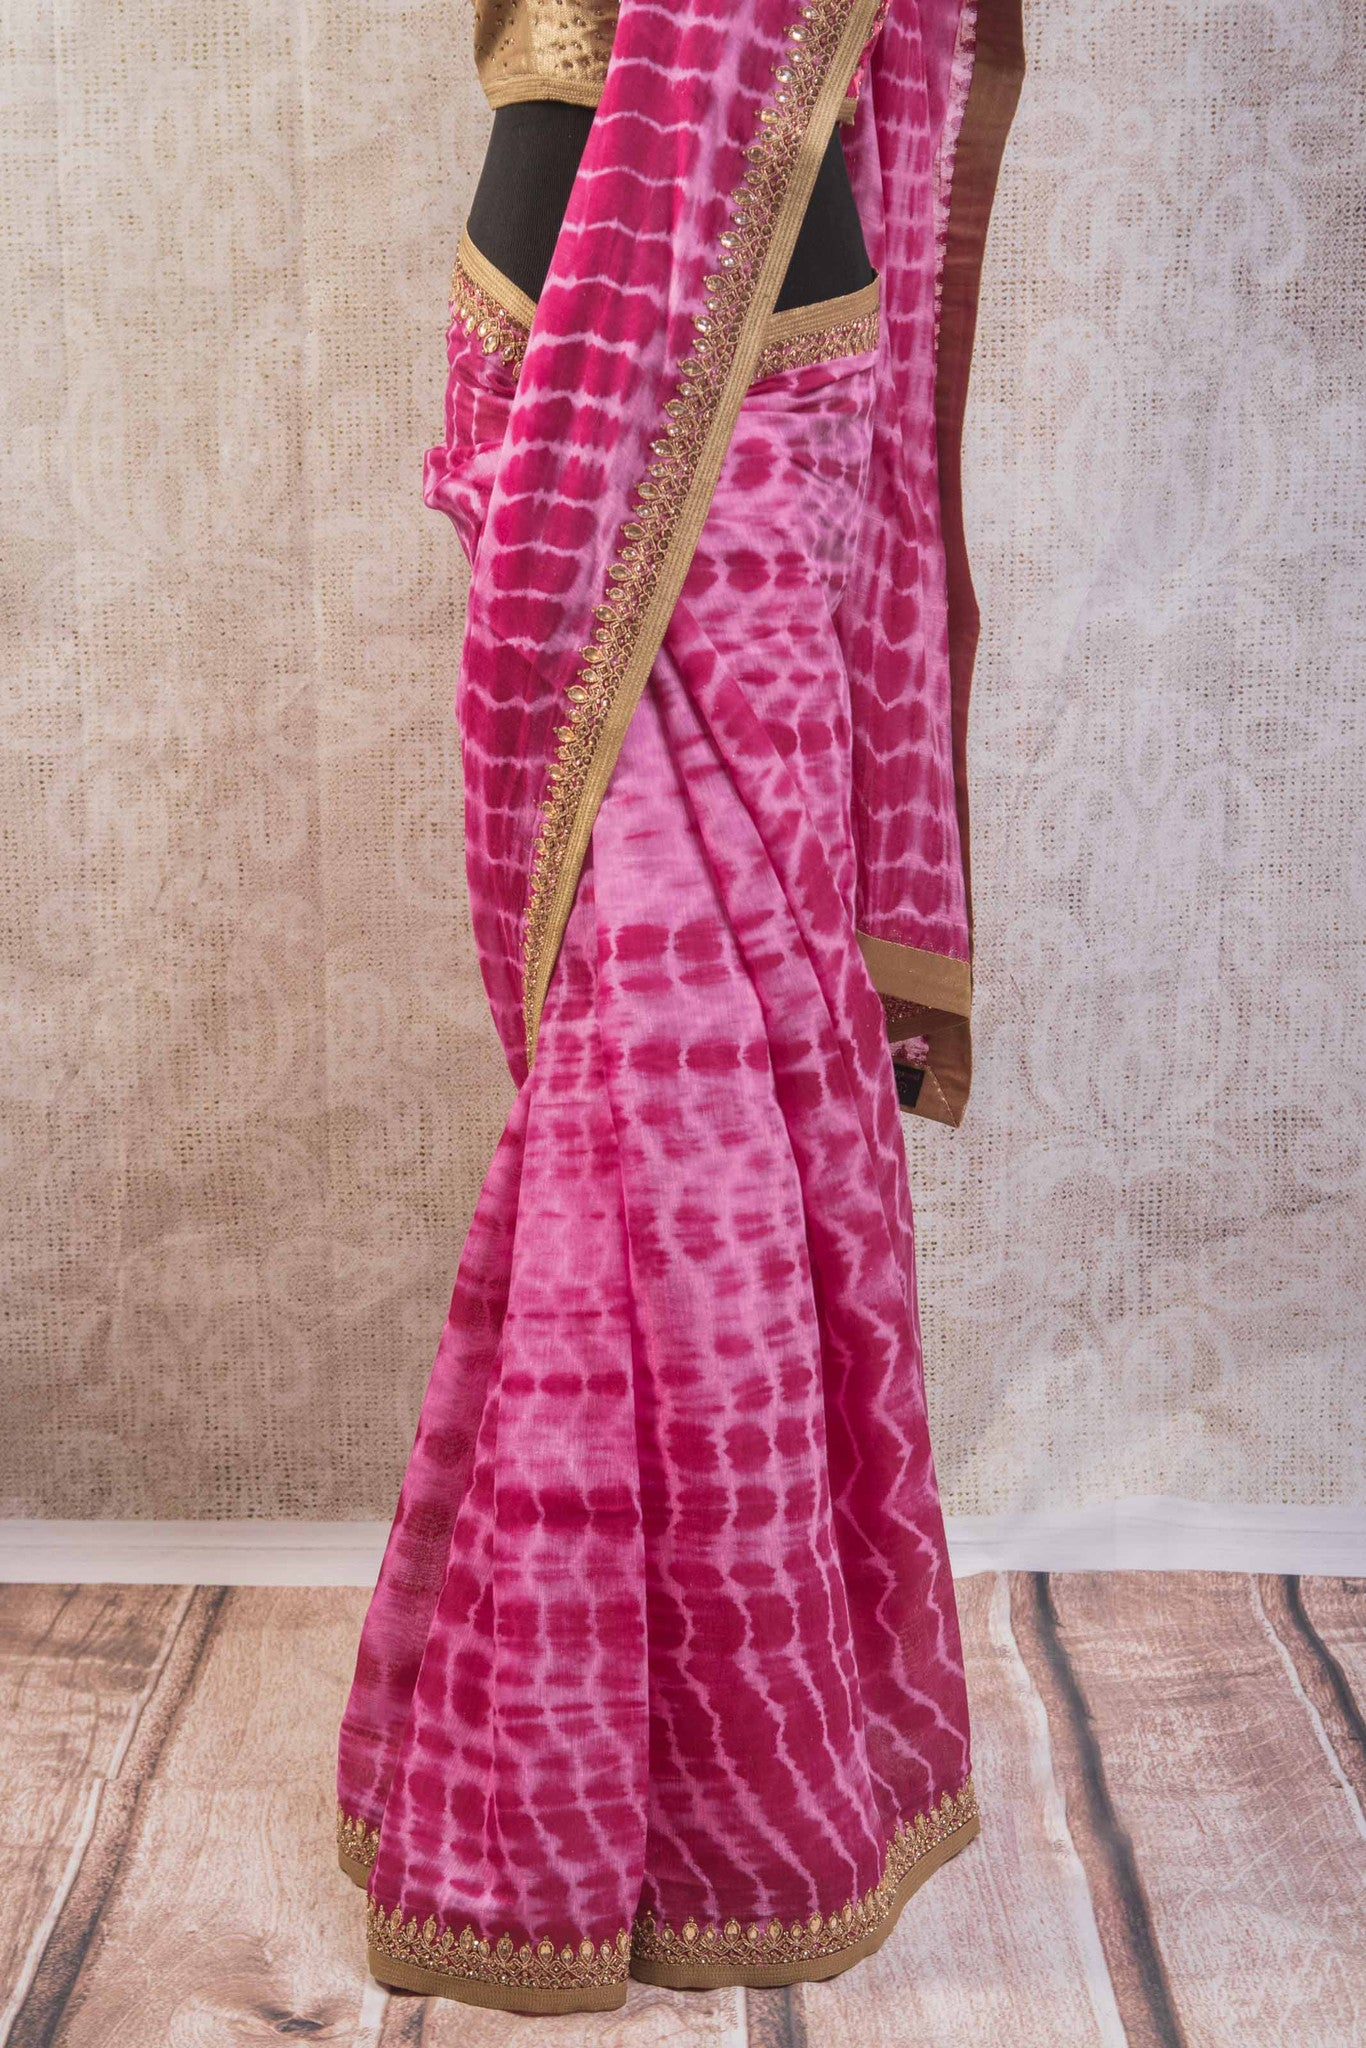 90b806 Versatile tie dye saree from India with an embroidered blouse and border. The beautiful pink Indian sari online at Pure Elegance is wonderfully versatile and can be worn to many festive occasions.